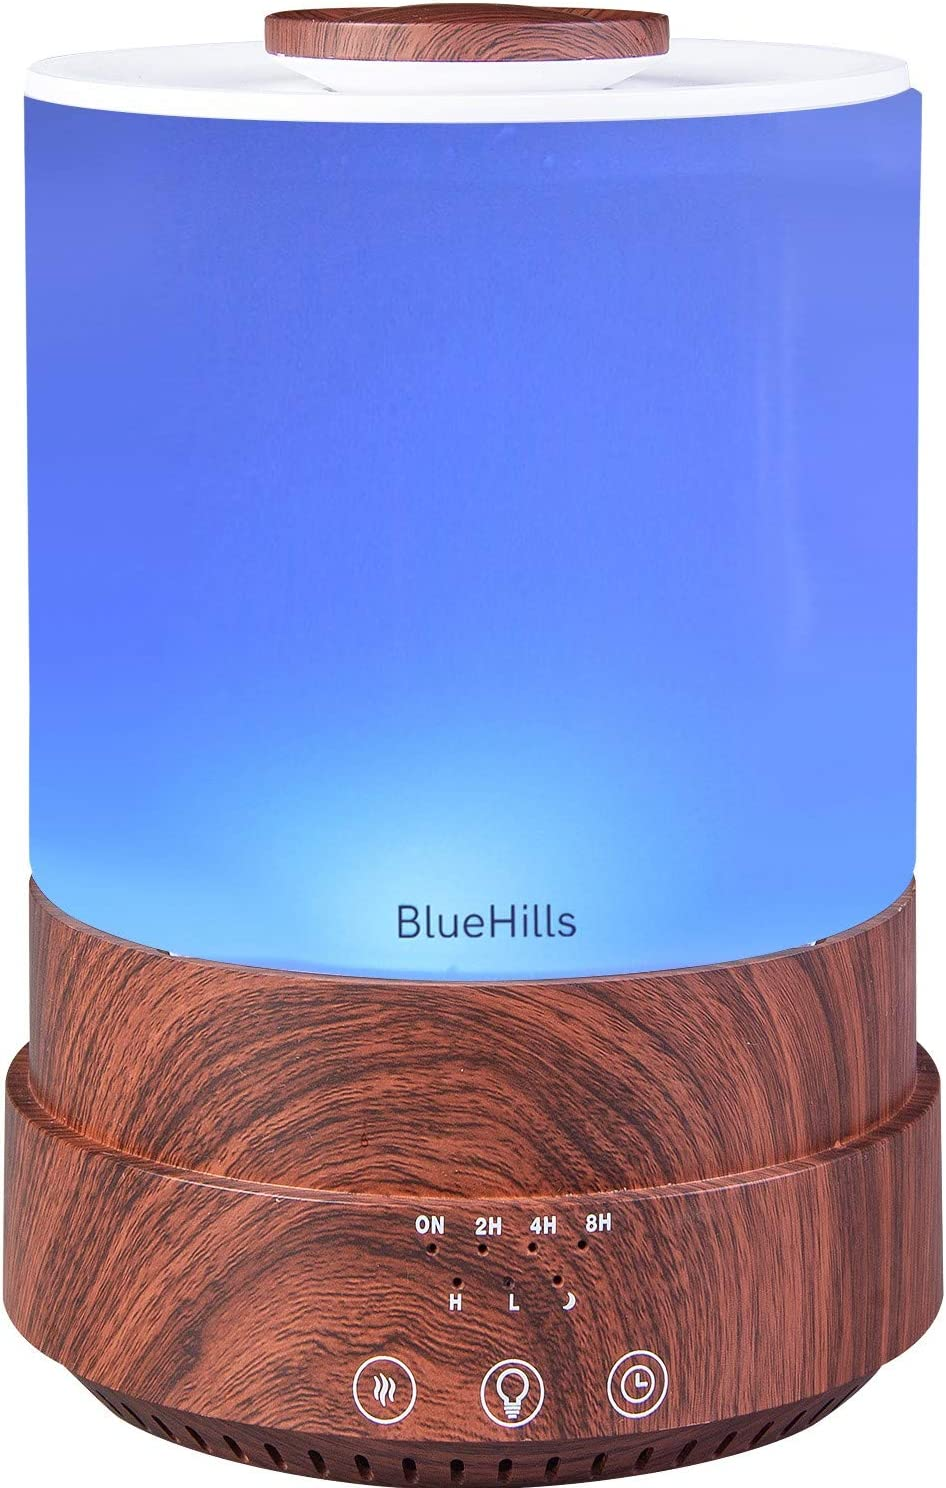 BlueHills 2500 ML XL Essential Oil Diffuser Aroma Humidifier with Timer for Large Home Decor Baby Rooms Big Huge 2.5 L Capacity Long Run with Lights Dark Wood Grain - F003